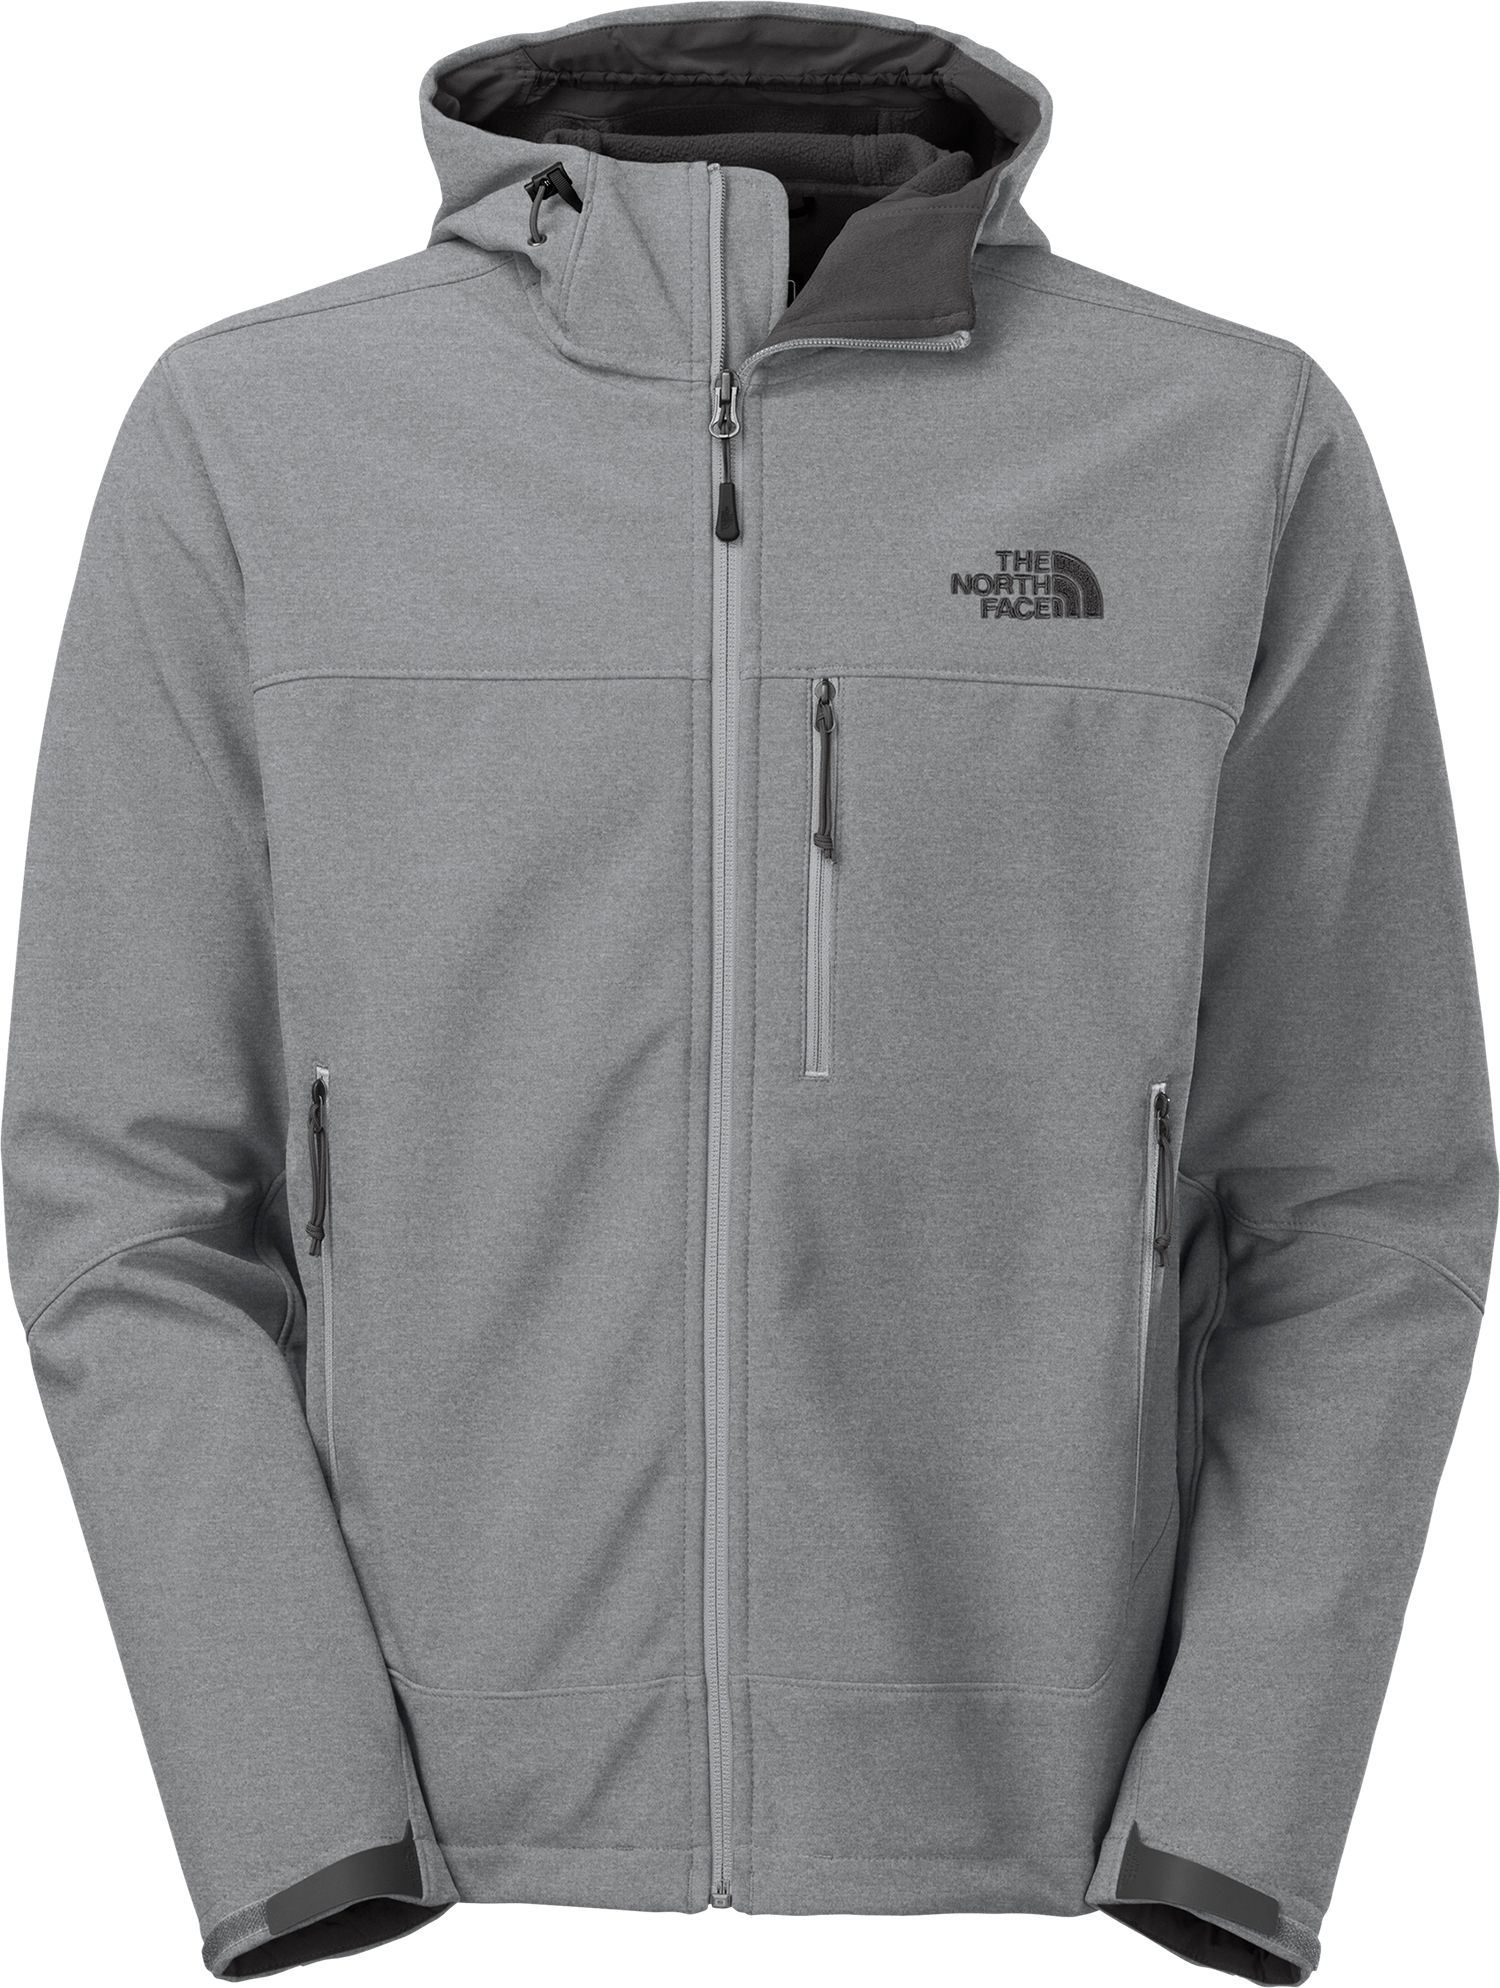 bd9e4236a438 ... The North Face Mens Apex Bionic Soft Shell Hooded Jacket DI ...